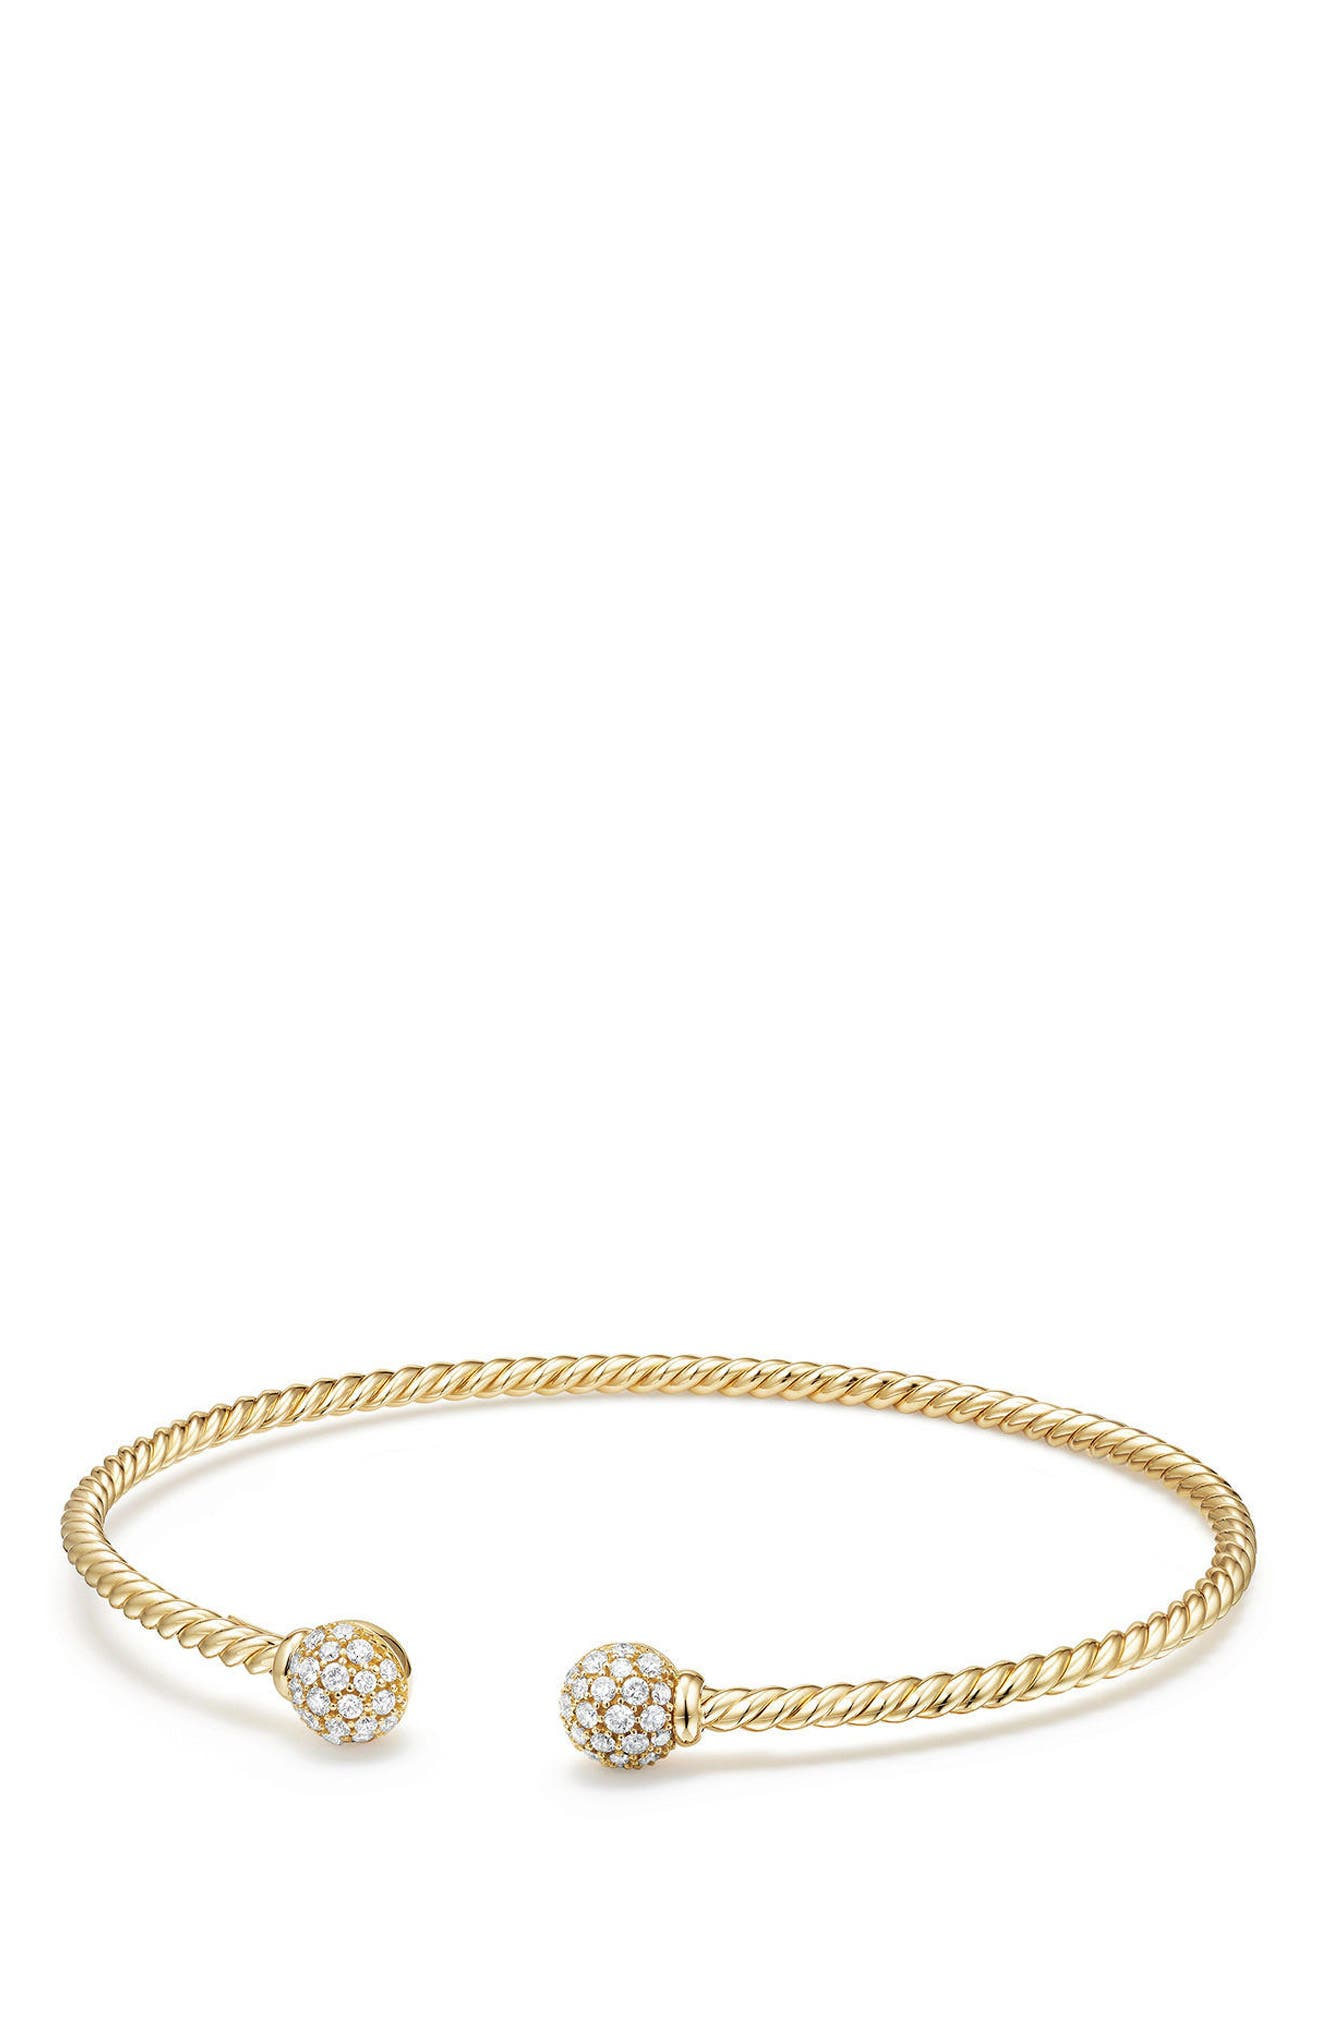 DAVID YURMAN Solari Bead Bracelet with Diamonds in 18K Gold, Main, color, YELLOW GOLD/ DIAMOND